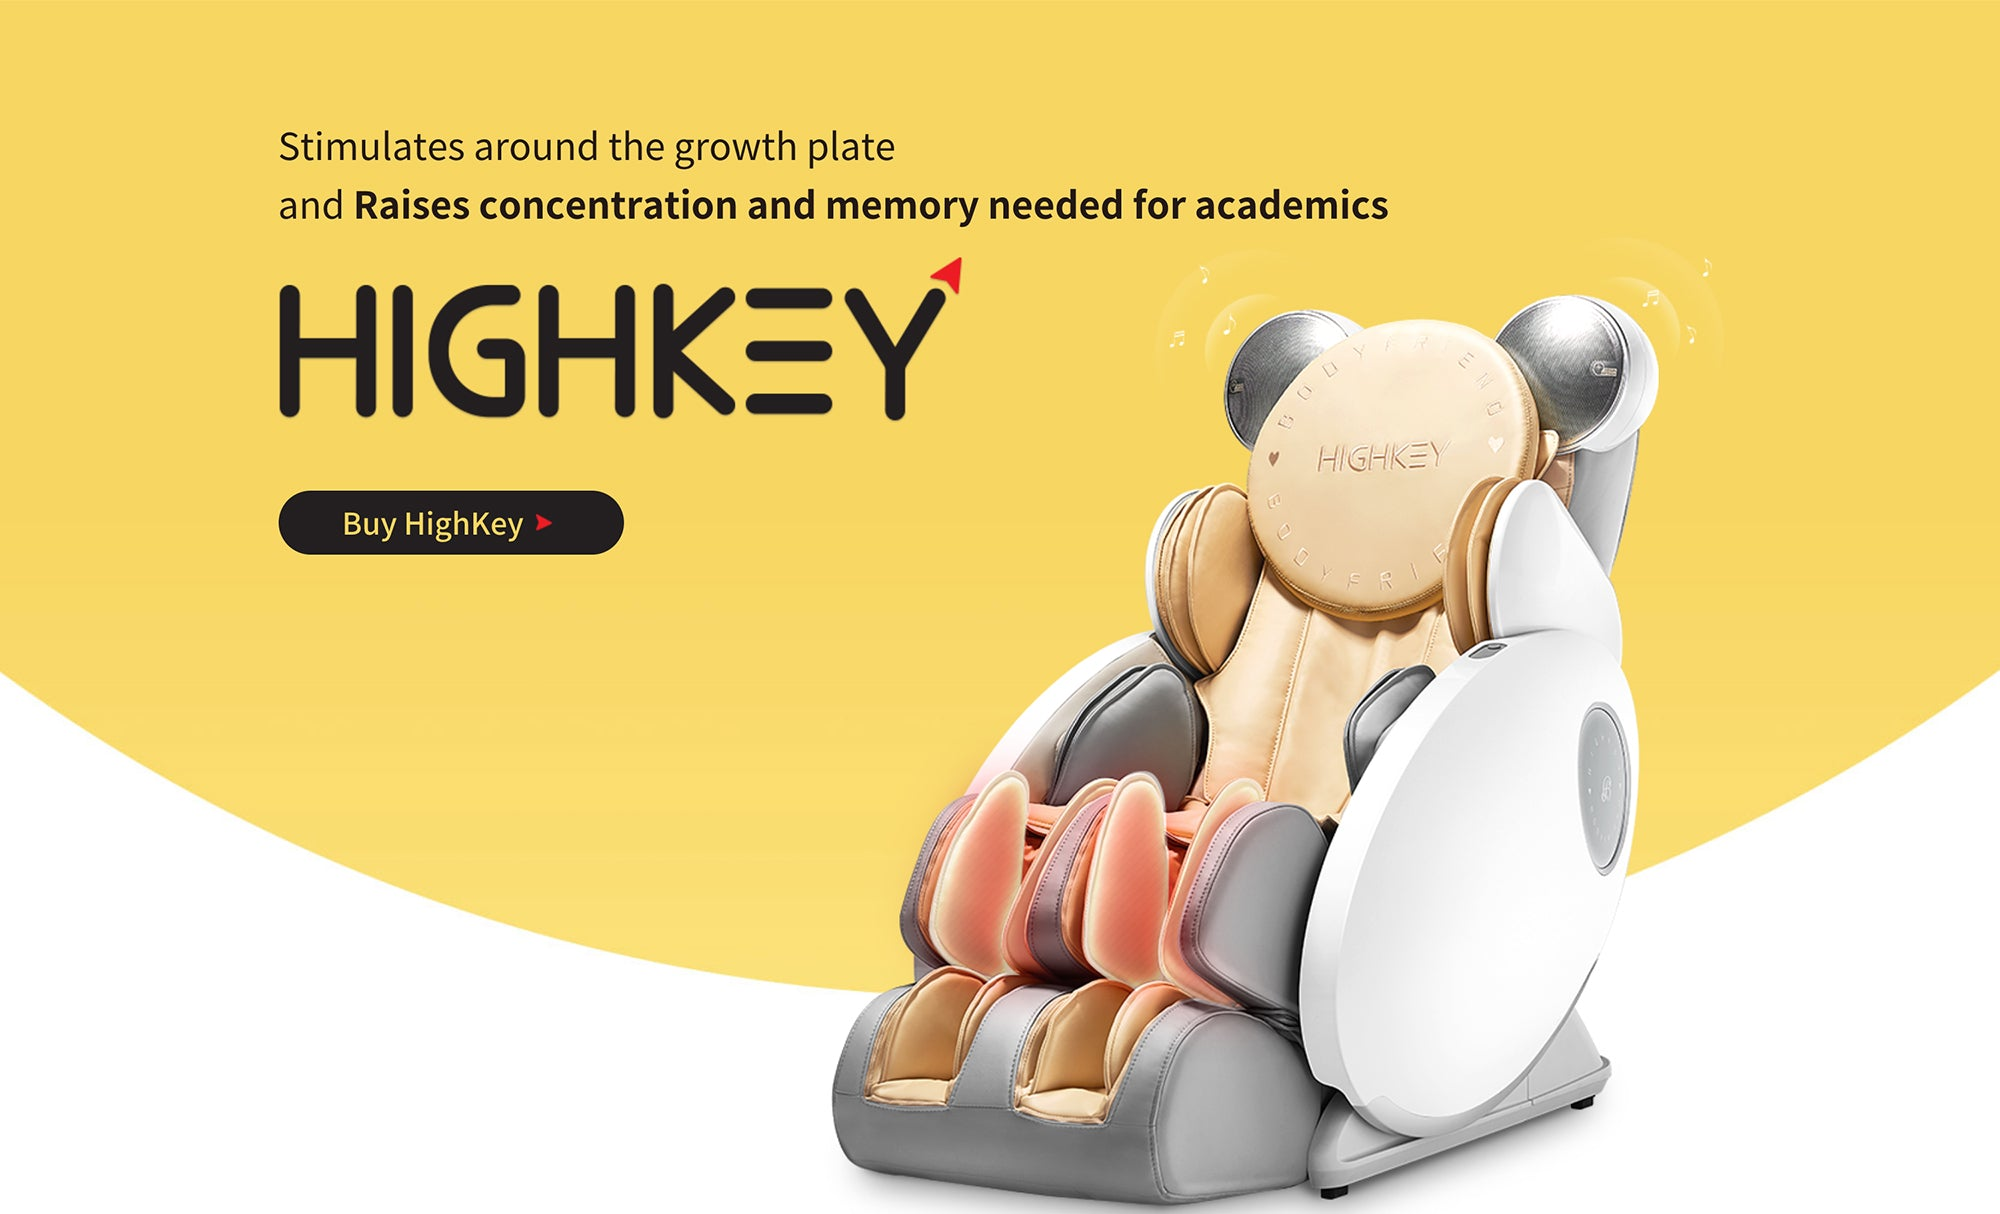 Stimulates Around The Growth Plate And Raises Concentration And Memory Needed For Academics